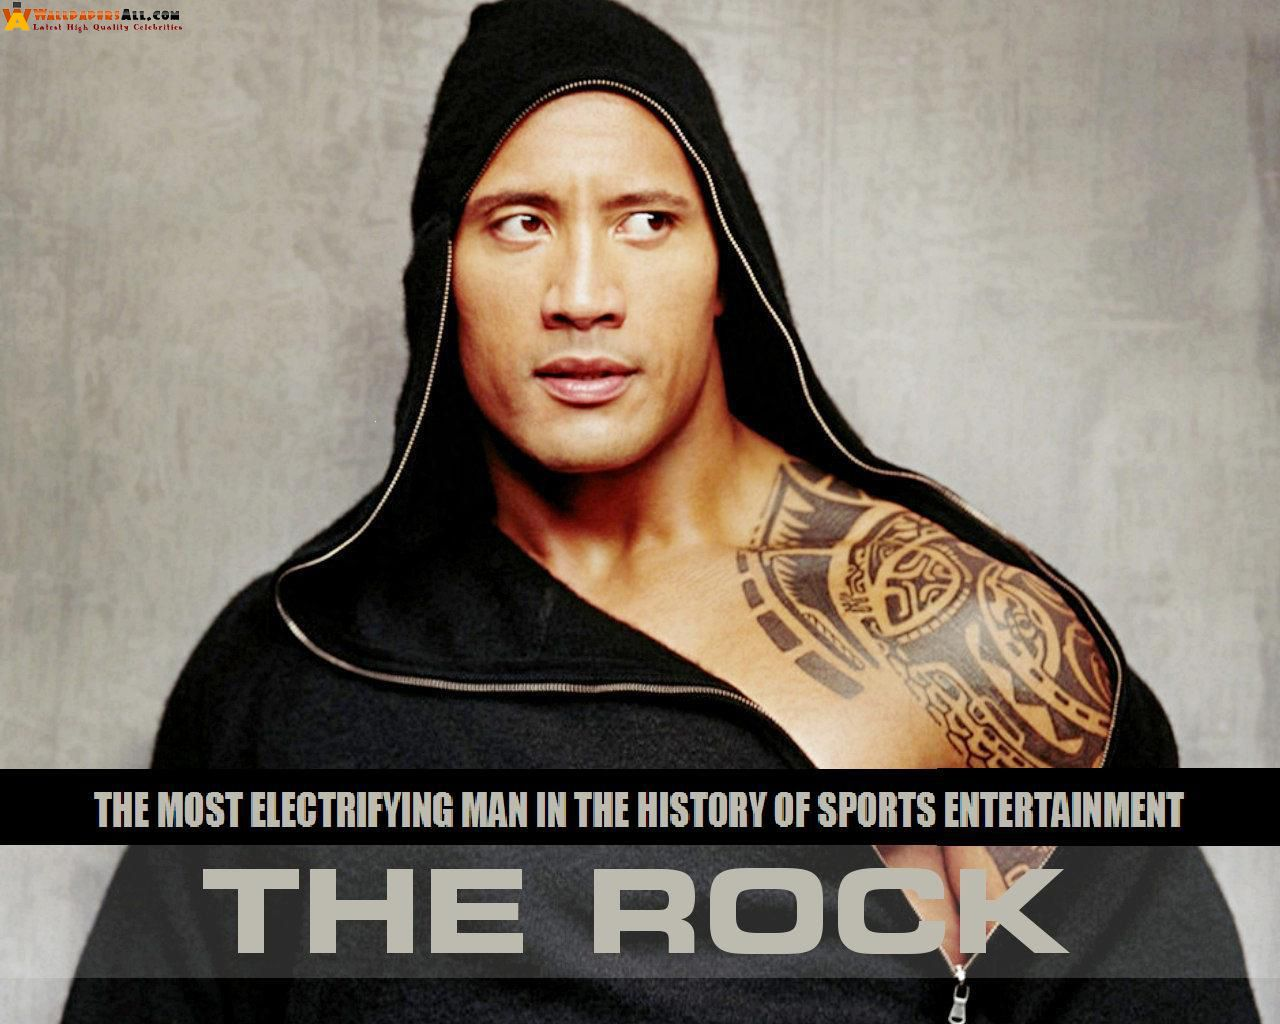 http://3.bp.blogspot.com/-M1CrxLZKCTo/T09yDvuBpKI/AAAAAAAAAe8/uElZv9YsUyA/s1600/rock-new-wwe-hd-wallpaper_wm.jpg